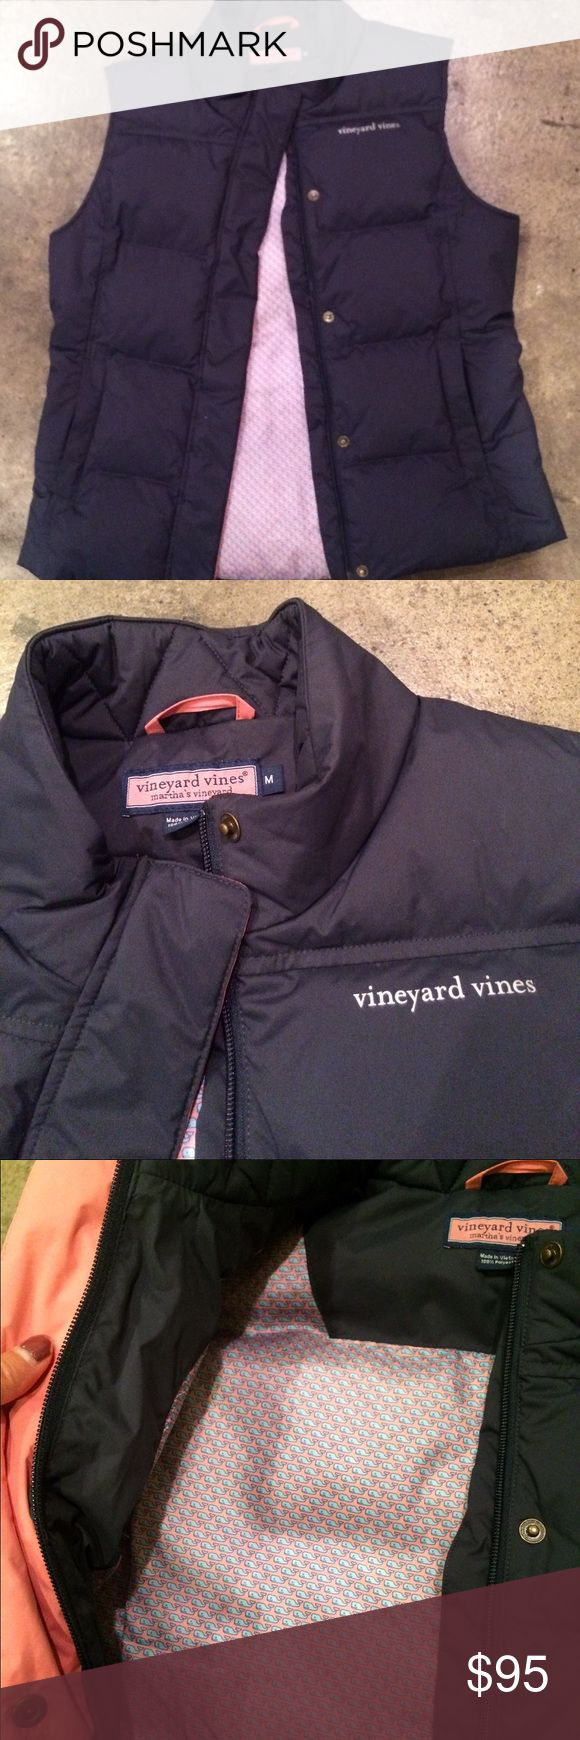 NWOT Vineyard Vines Puffer Vest Brand new, never worn. Only flaw is a tiny mark above inner button (see 4th pictures). Signature Vineyard Vines whale logo located on the inside. Color is in Vineyard navy. Vineyard Vines Jackets & Coats Vests